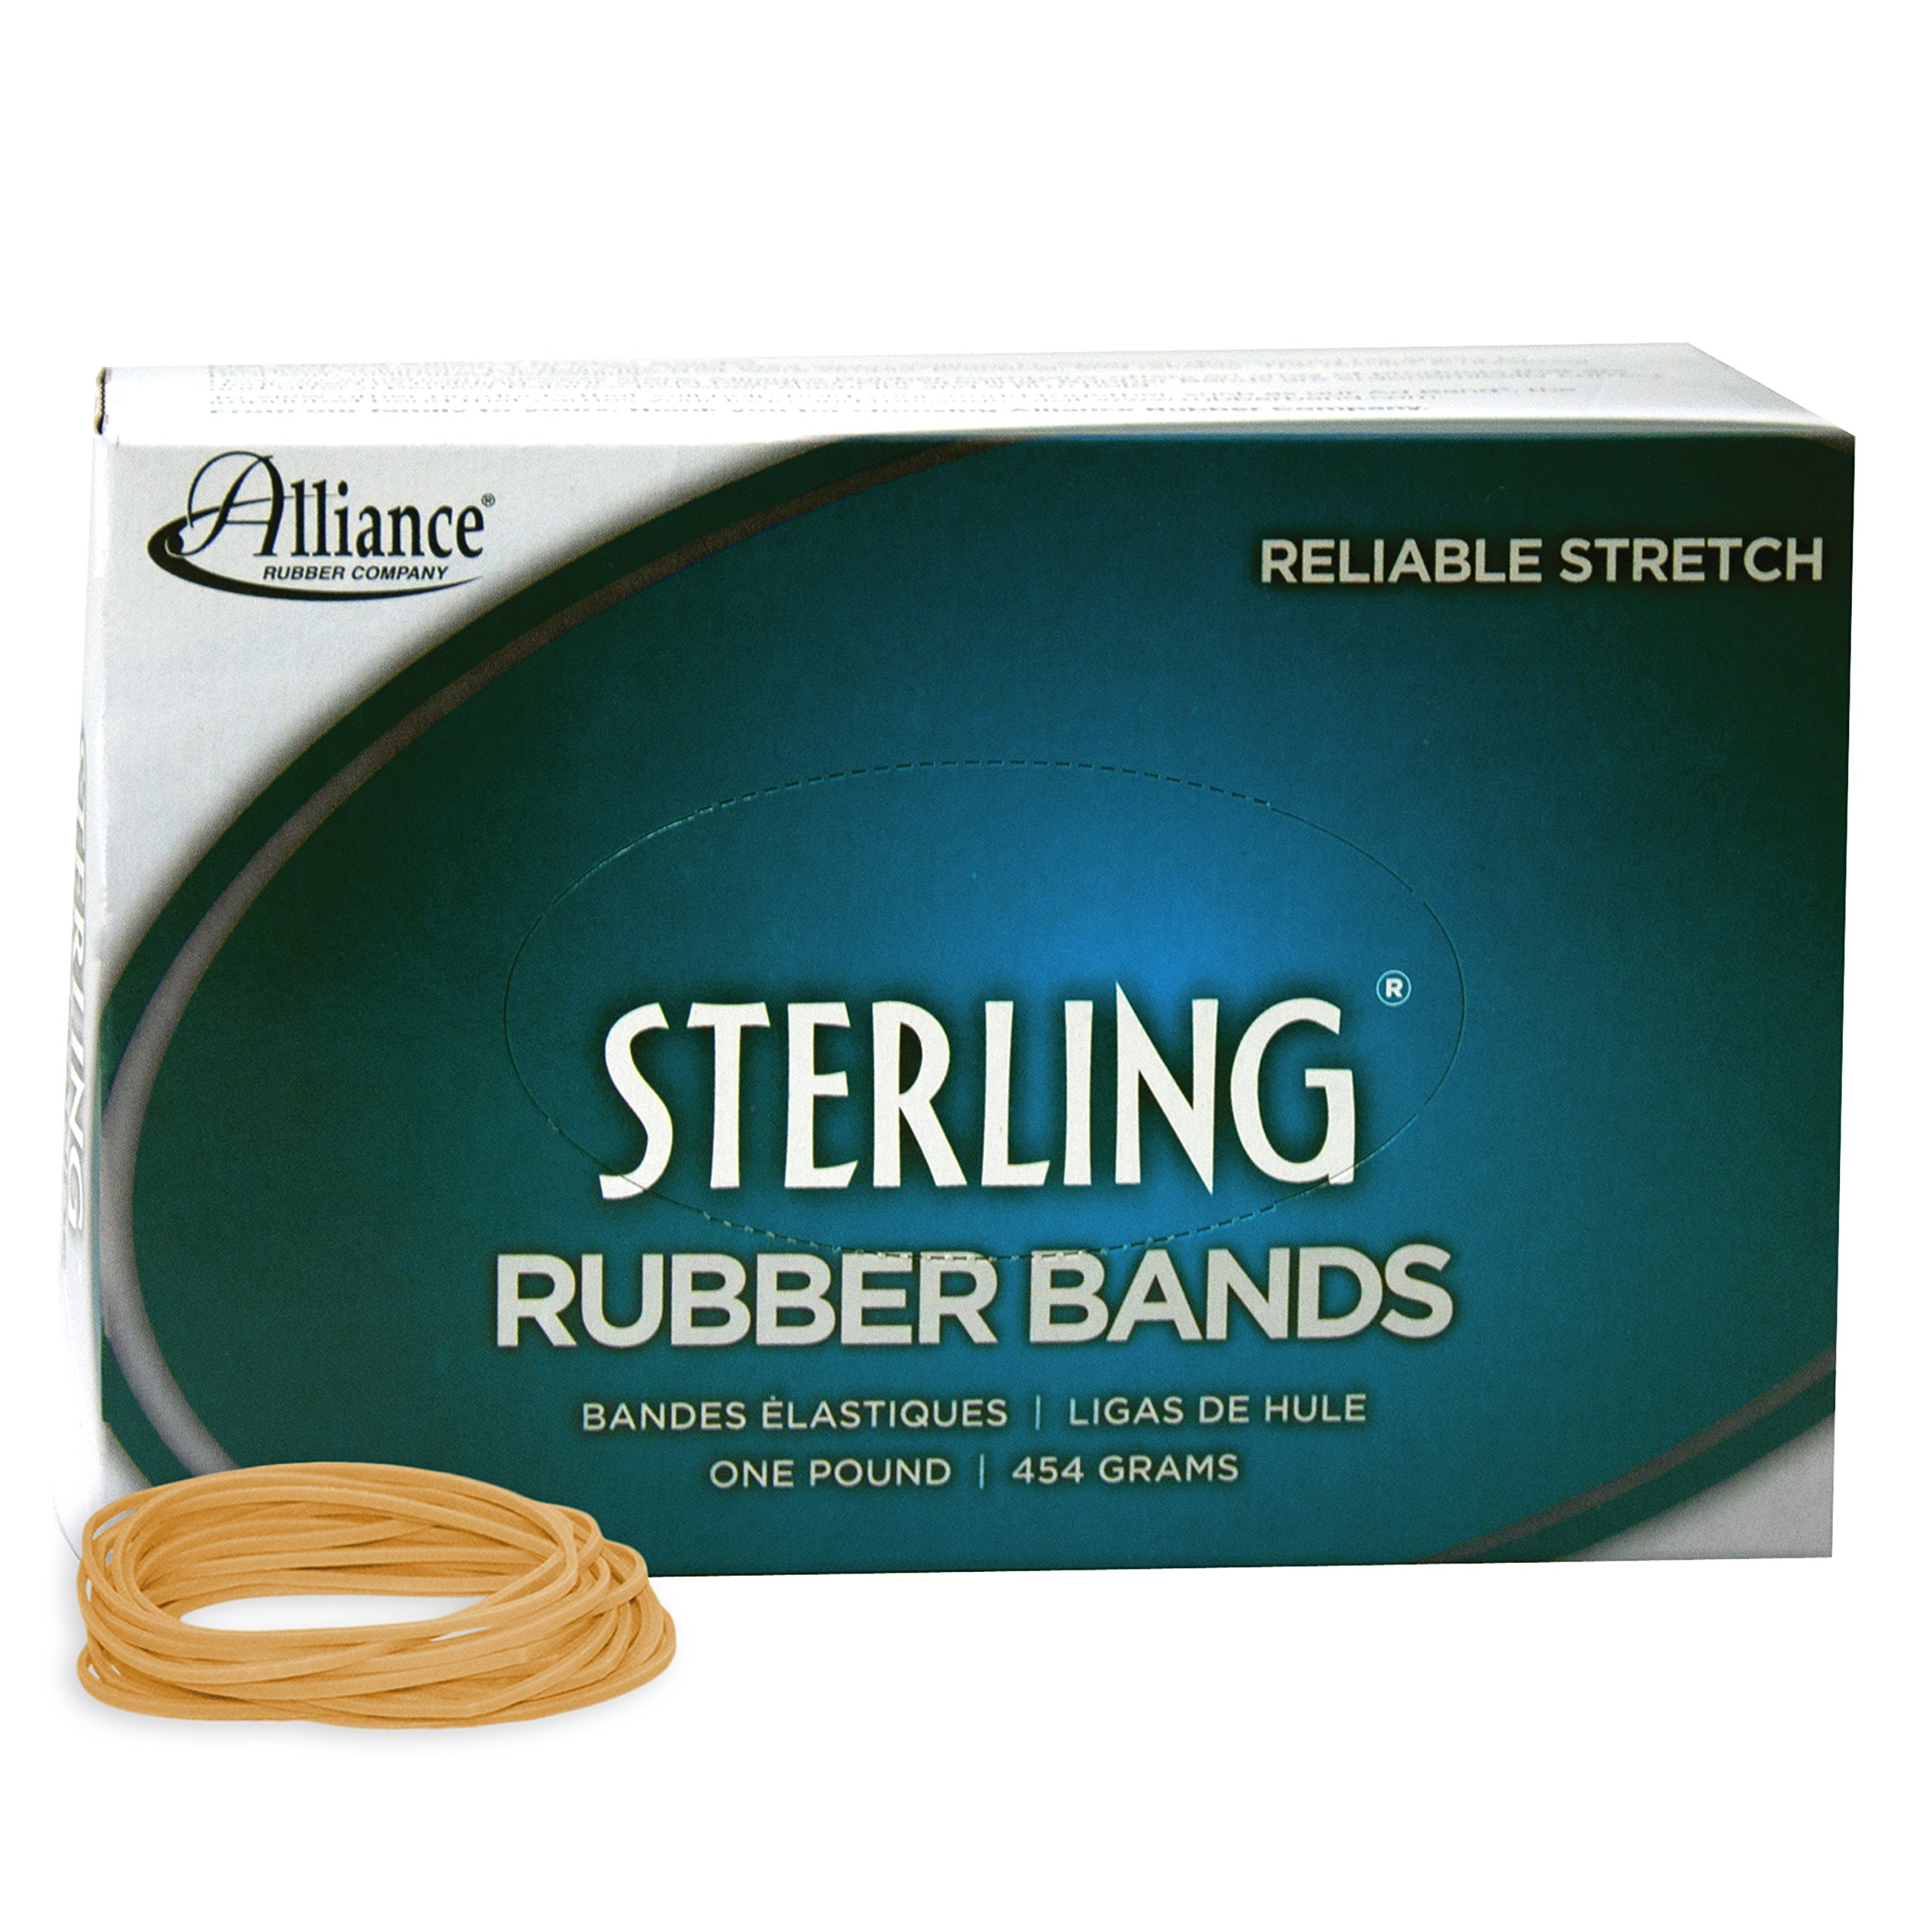 Alliance Rubber 24185 Sterling Rubber Bands Size #18, 1 lb Box Contains Approx. 1900 Bands (3'' x 1/16'', Natural Crepe)